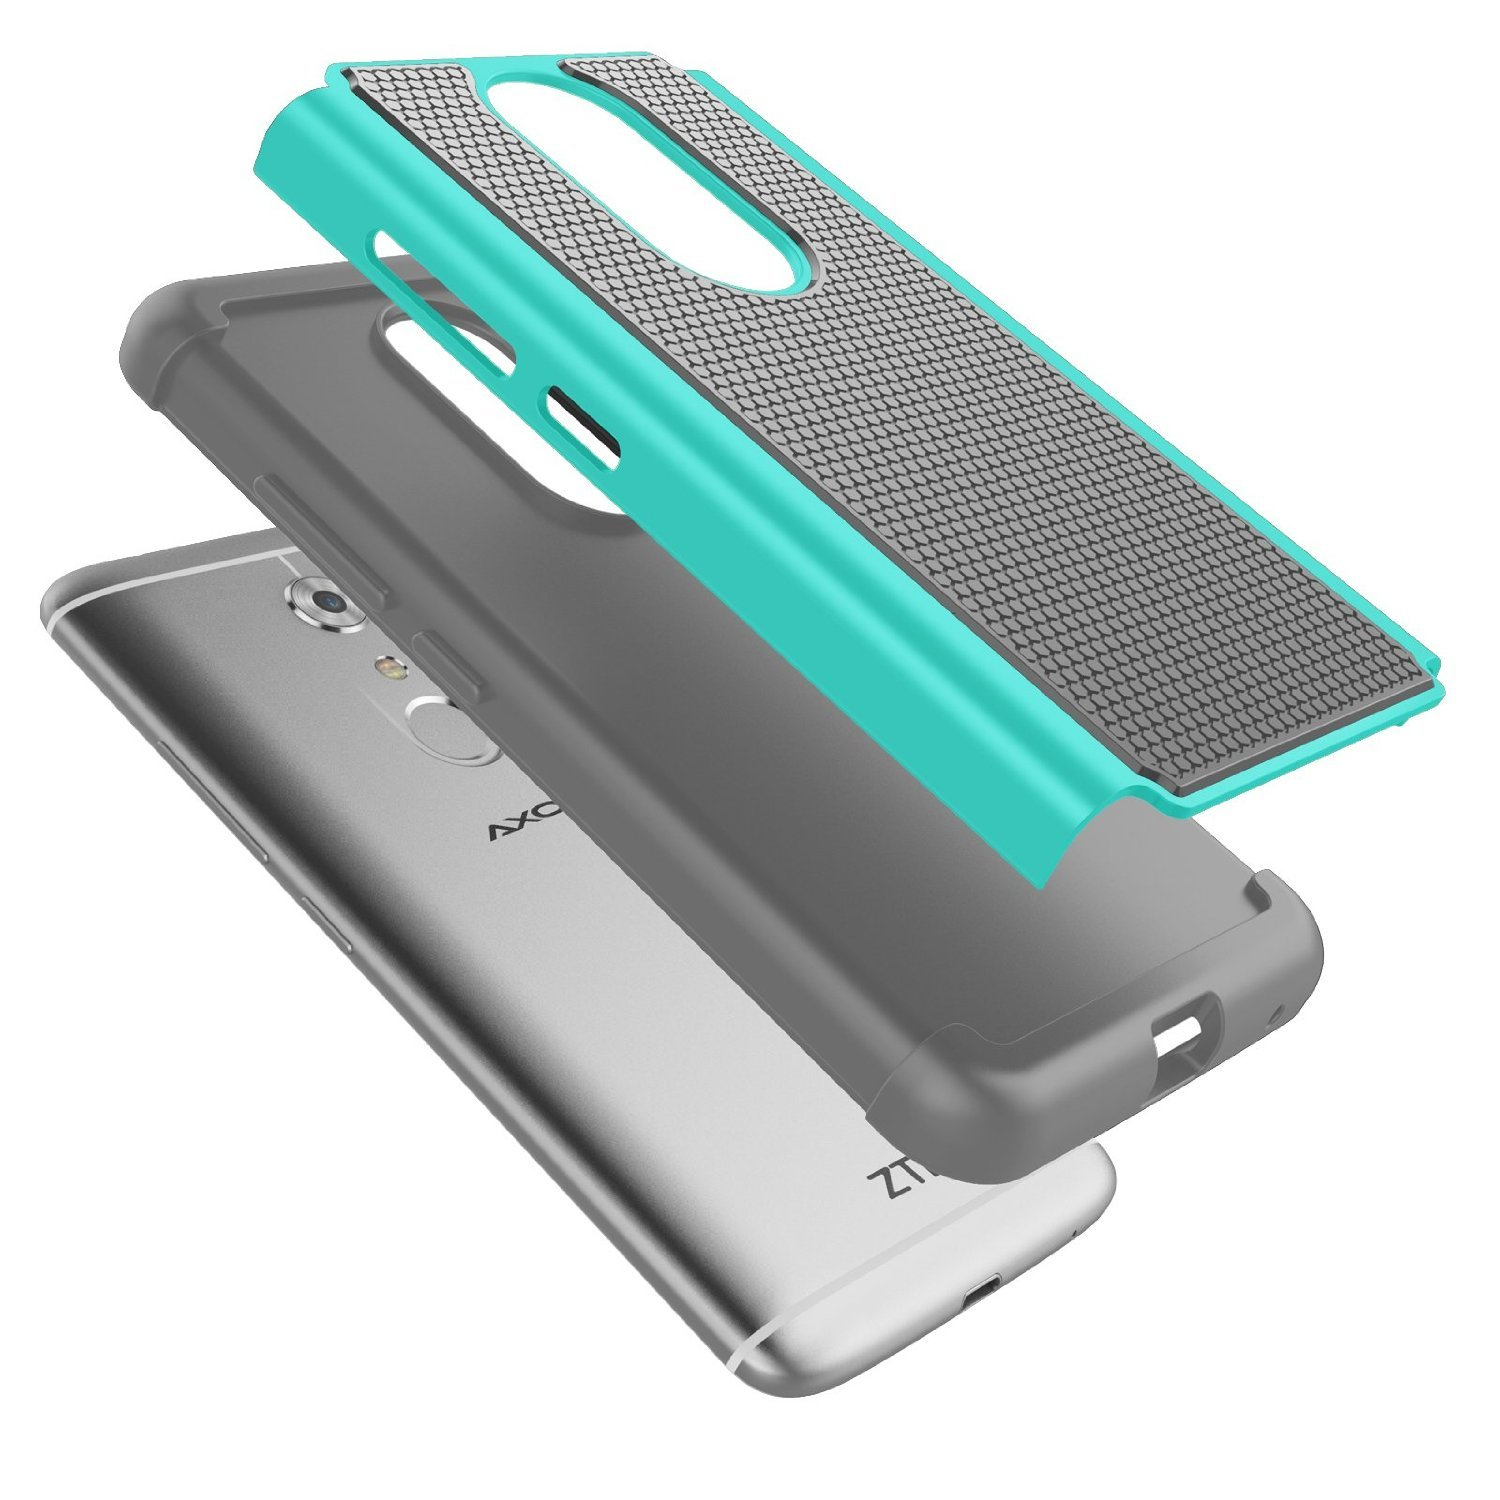 Hybrid Armor Dual Layer Protective Cover Case for ZTE Axon 7 - Cyan&Gray